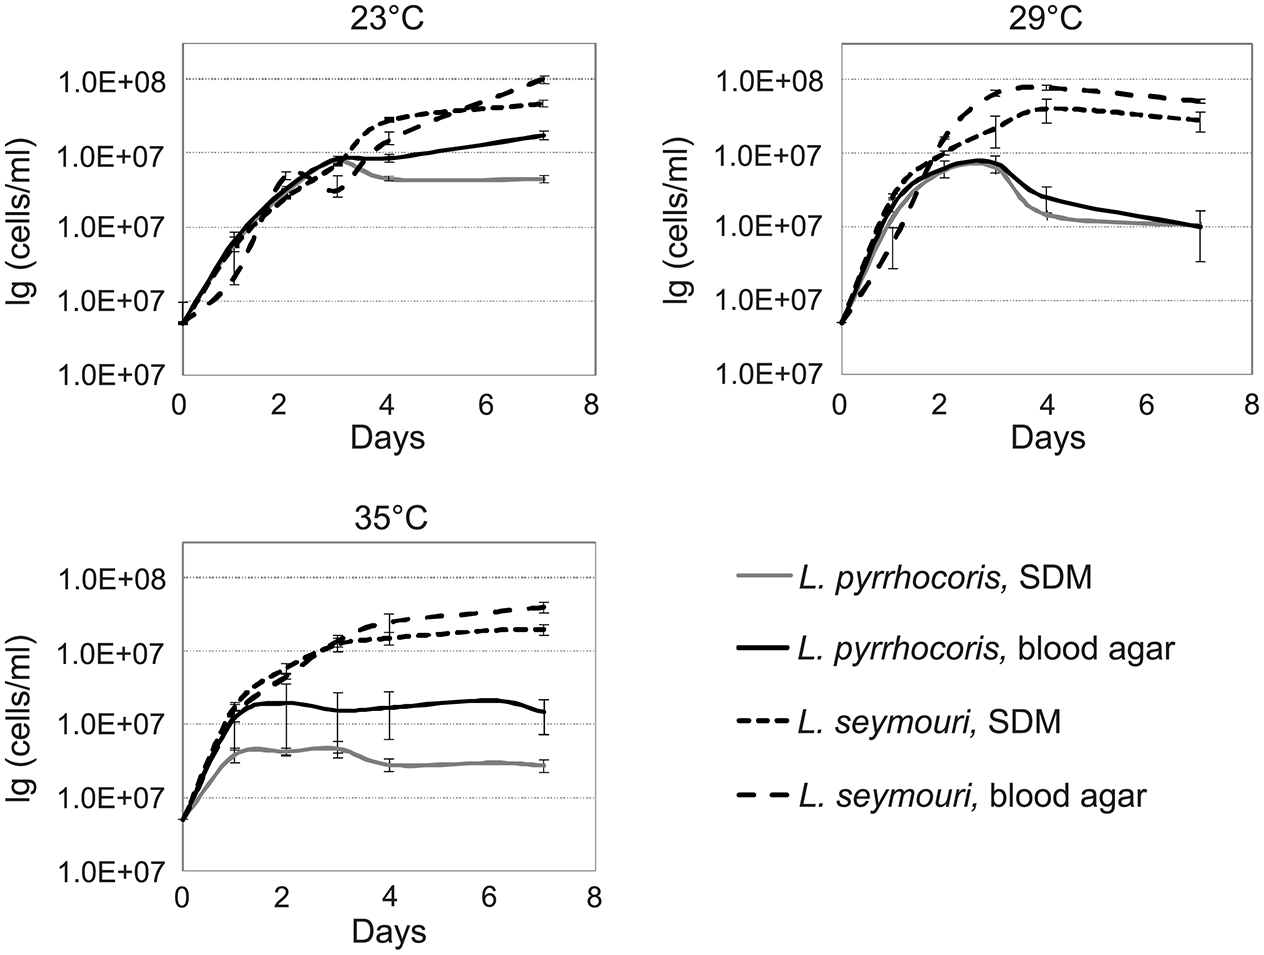 Growth kinetics of <i>Leptomonas pyrrhocoris</i> and <i>L</i>. <i>seymouri</i> at 23°C, 29°C, and 35°C in SDM and blood-agar media.